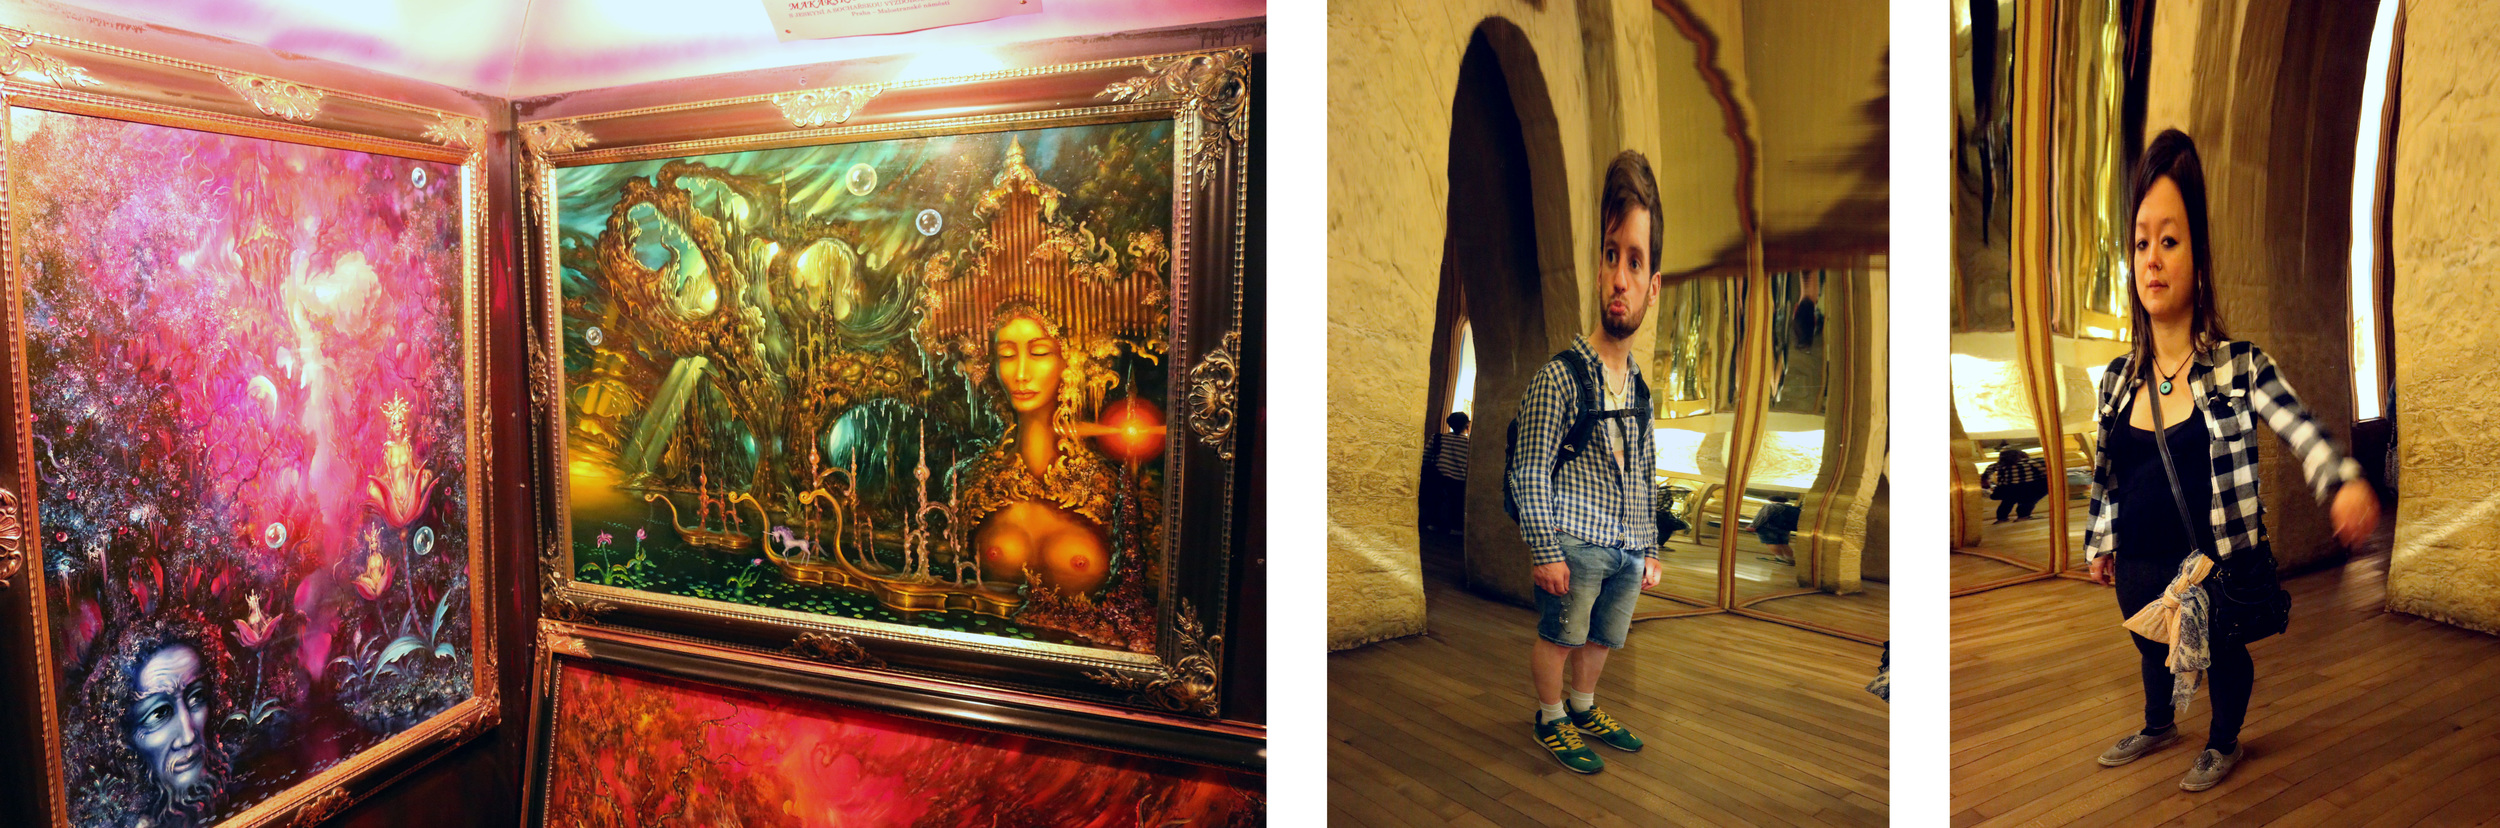 We found this neat little museum with fantastical works painted by Czech artist Reon Argondian. Then, we found a house of mirrors.